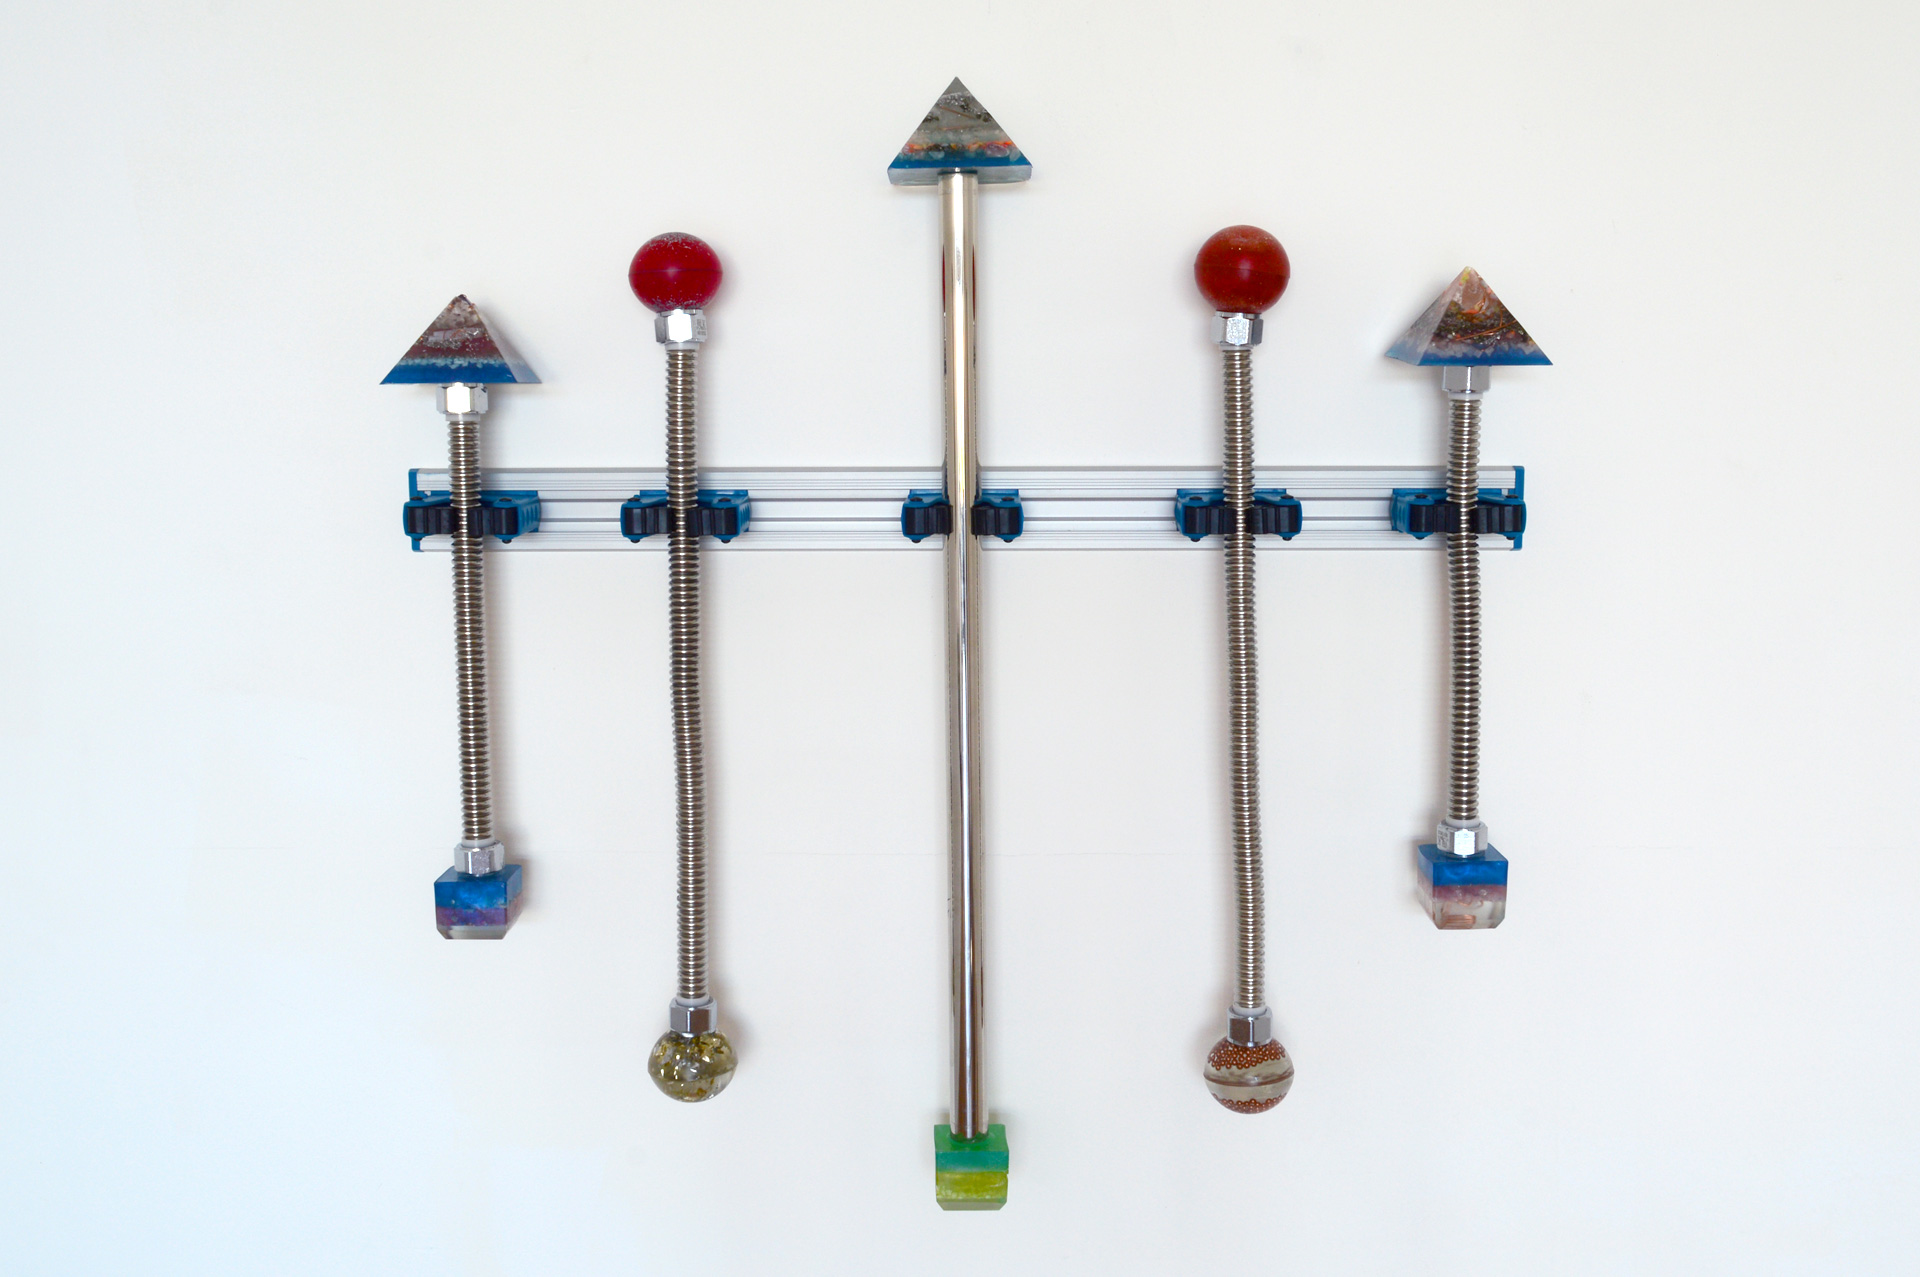 Chakra Sticks With Battle Damage, 2016